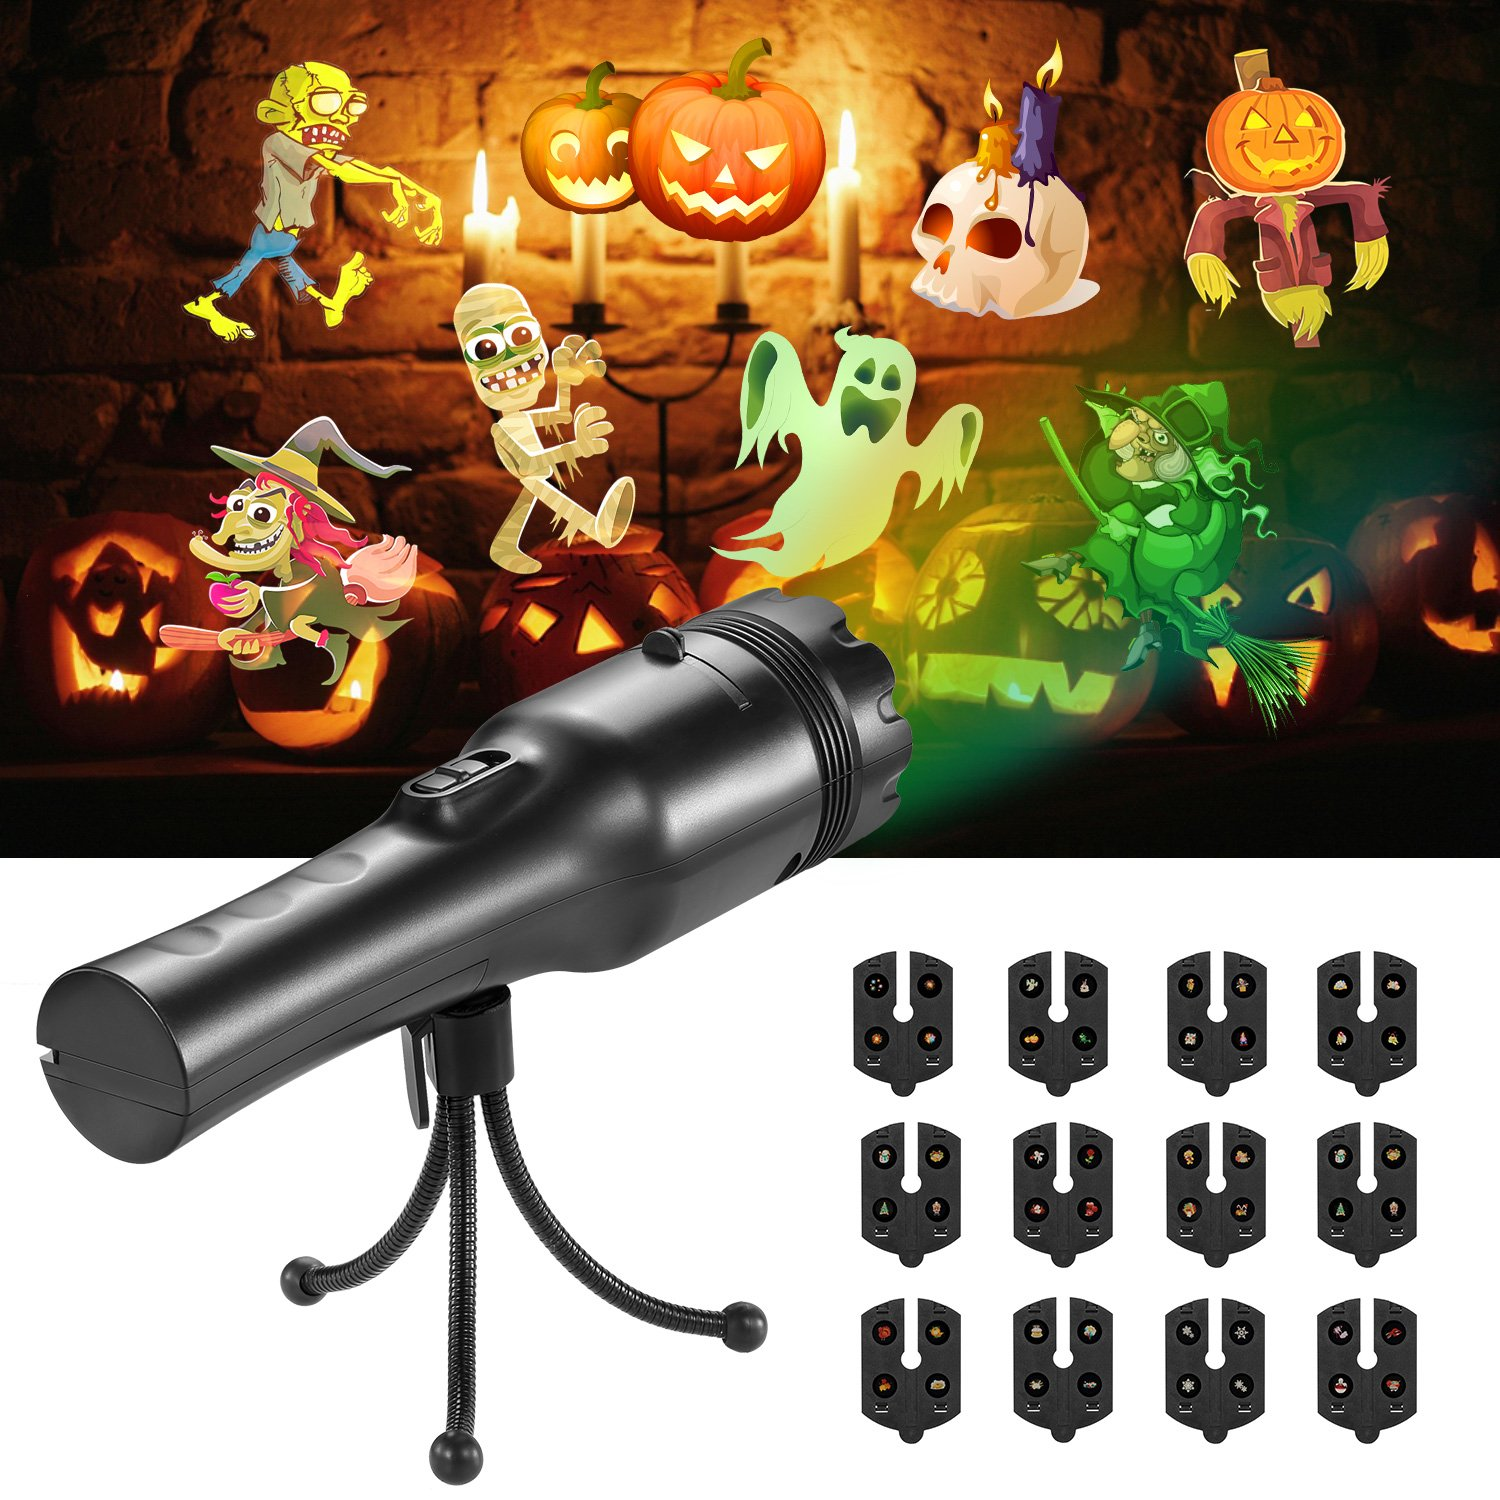 COMLIFE Handheld Halloween LED Projector Lights, Portable Projector Lights, Battery-Operated 2 in 1 Decoration Light & Handheld Flashlight,12 Slides for Home Party, Birthday, Christmas, Easter